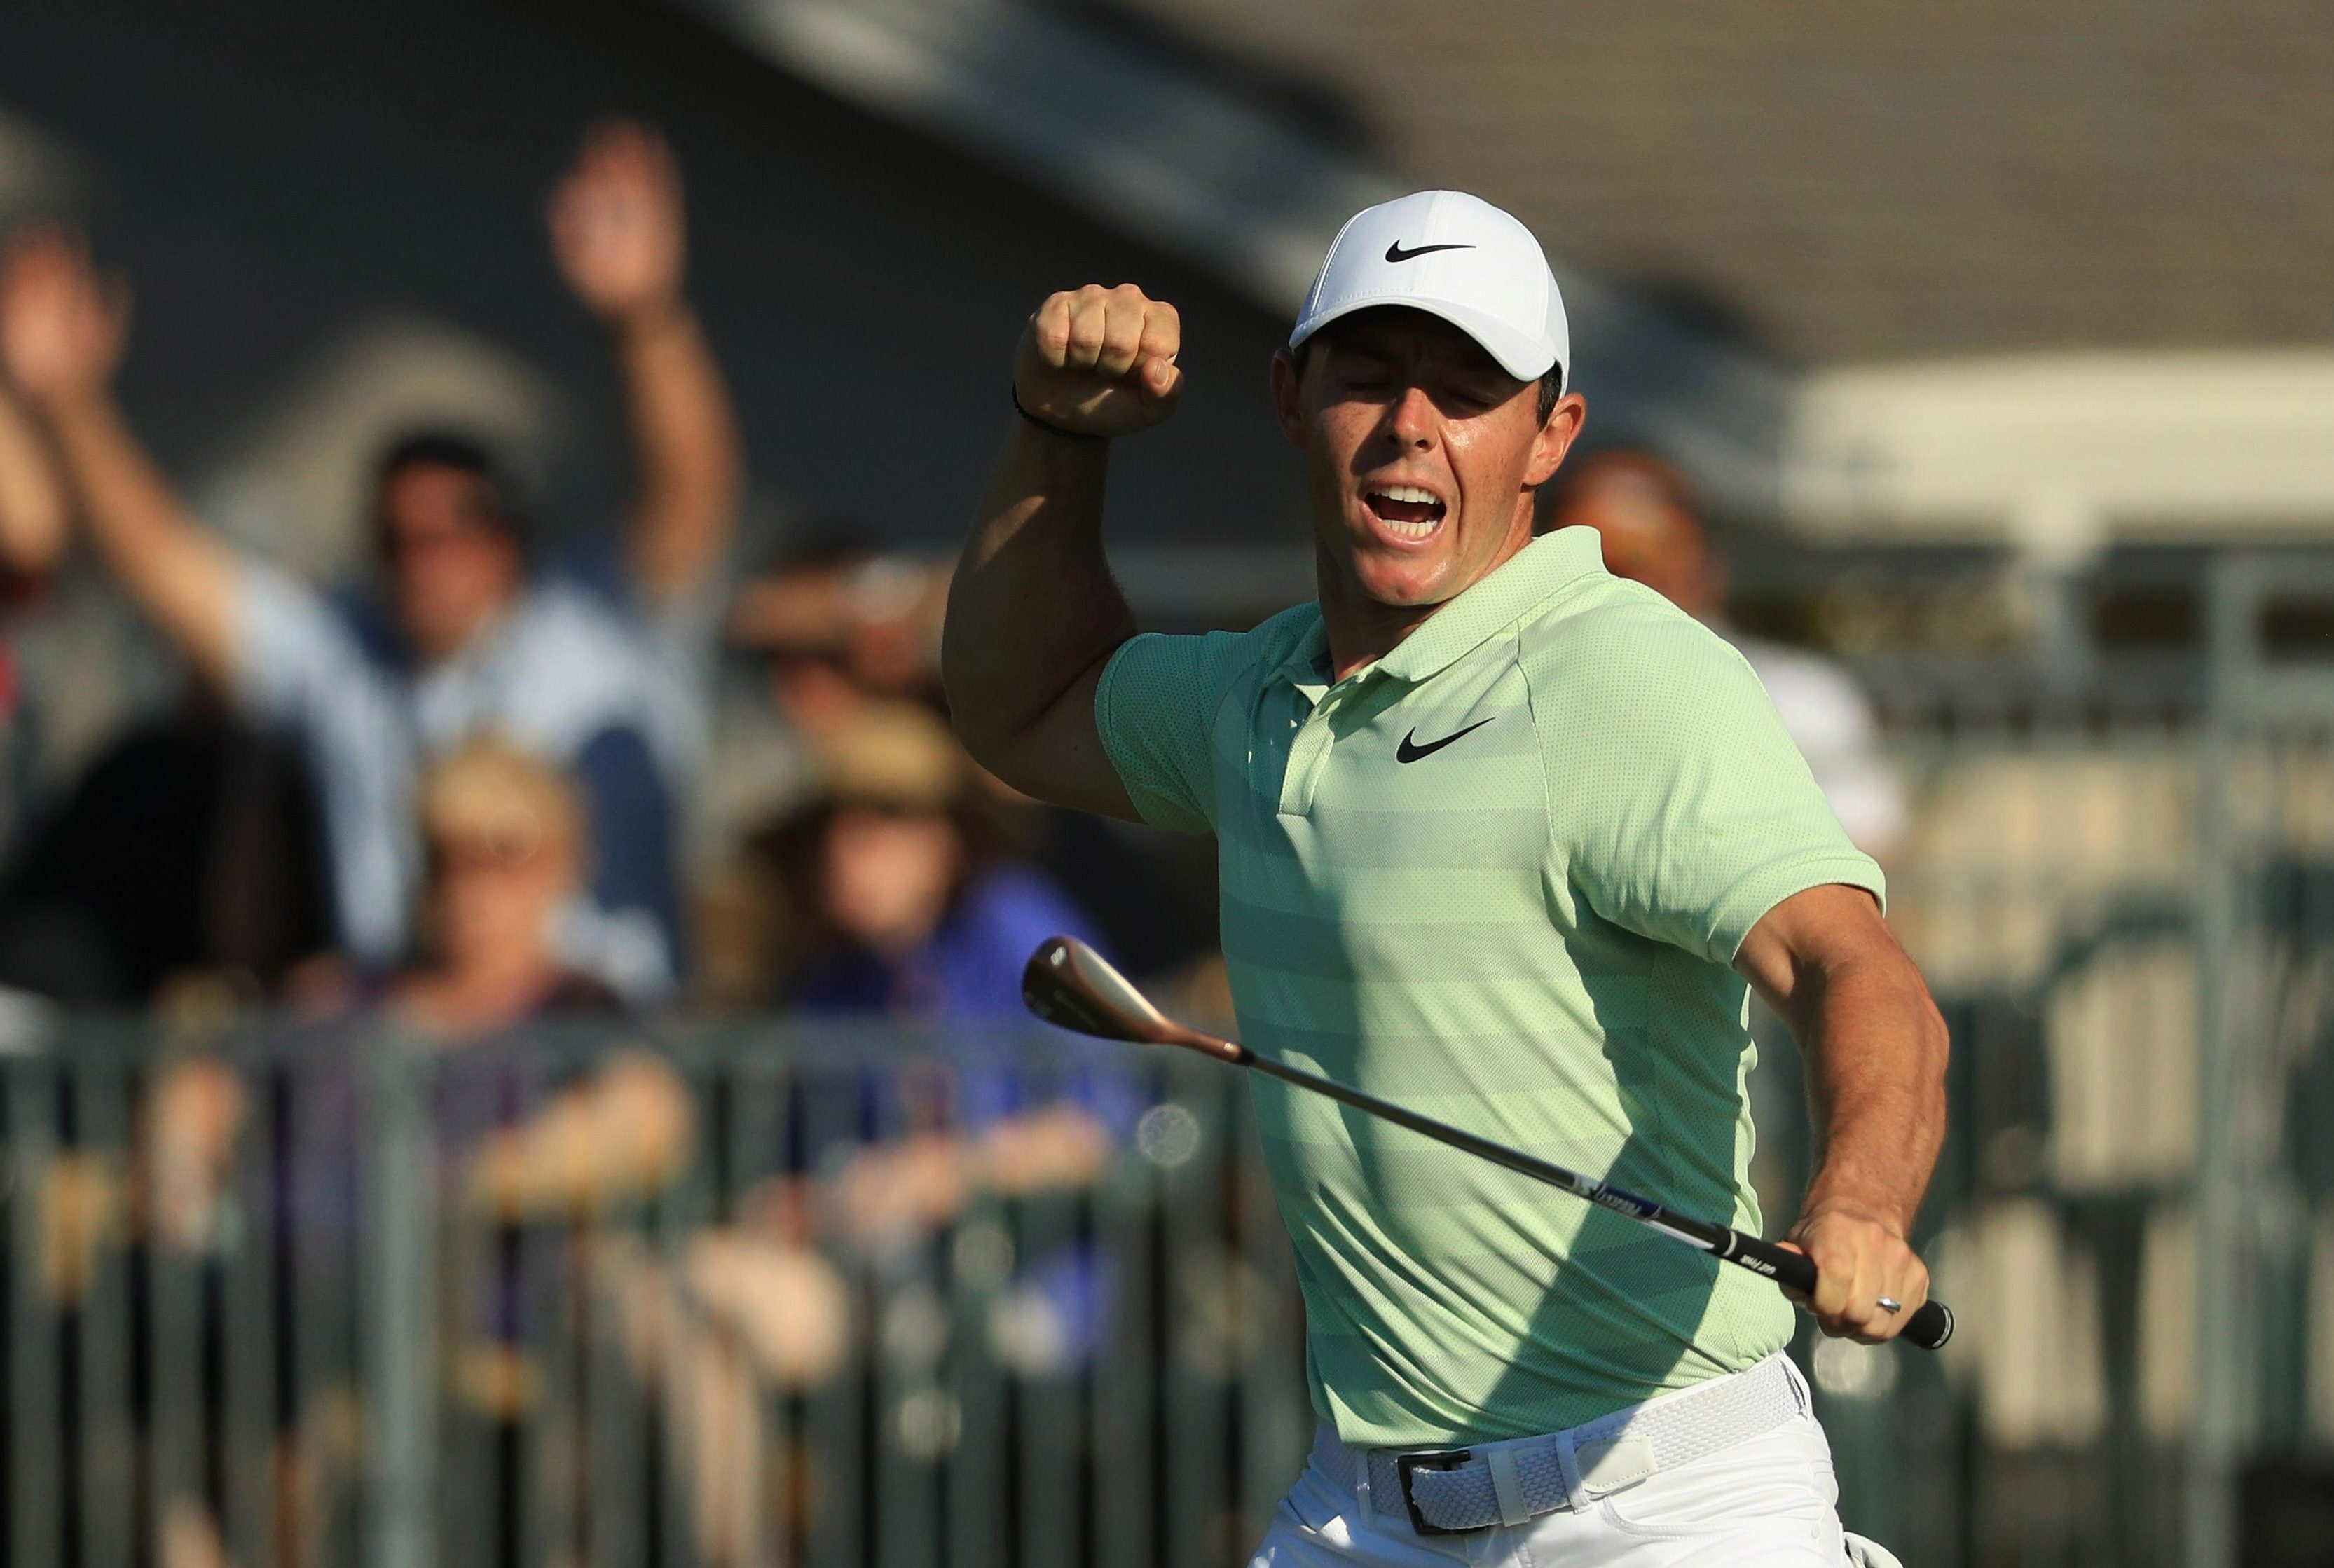 Rory McIlroy carded a final round of 64 to win the Arnold Palmer Invitational